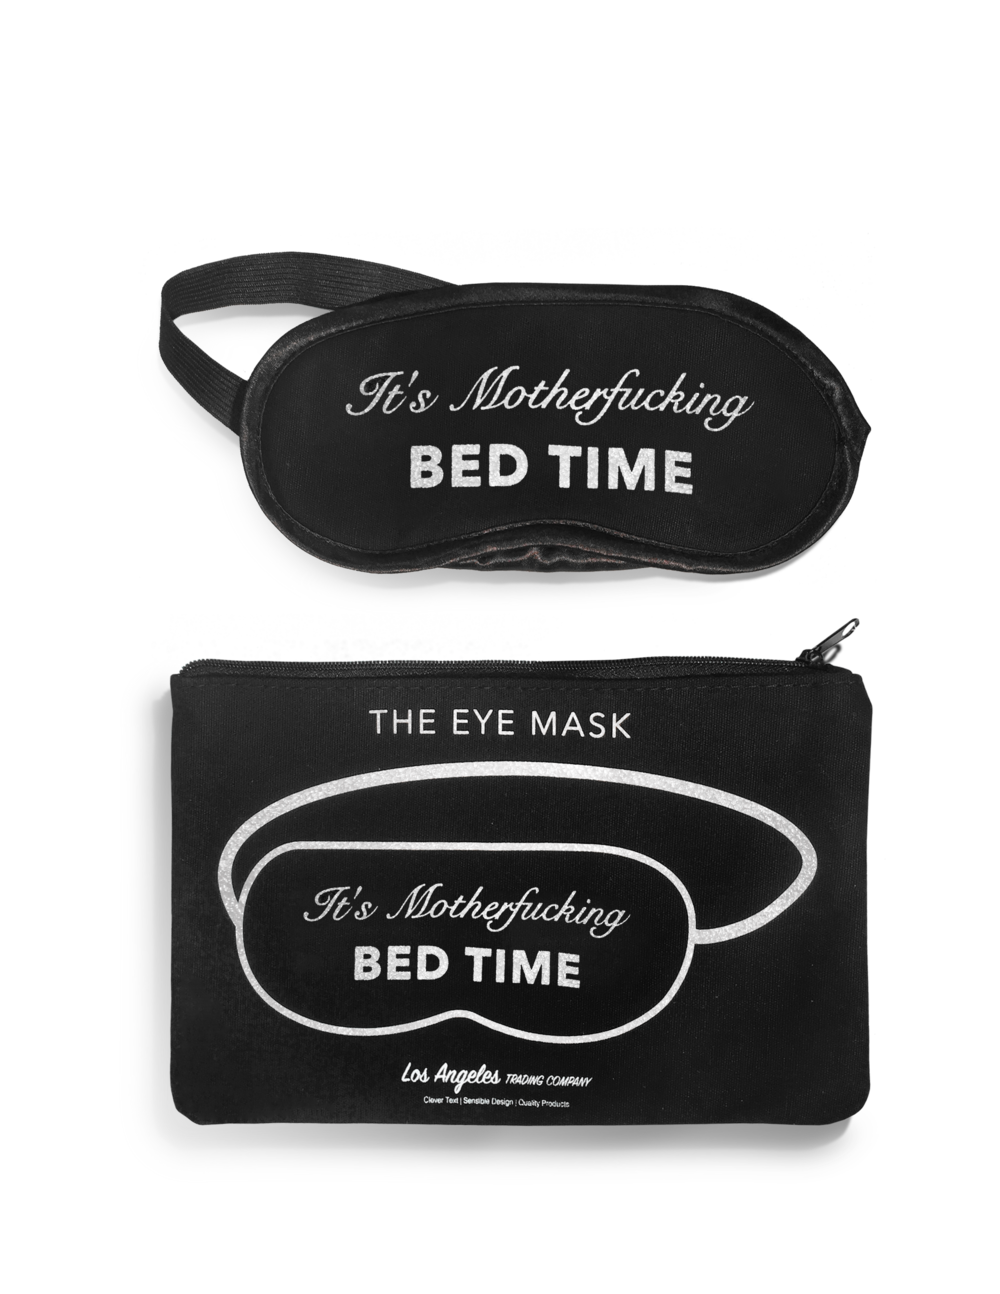 It's Motherfucking Bed Time Eye Mask